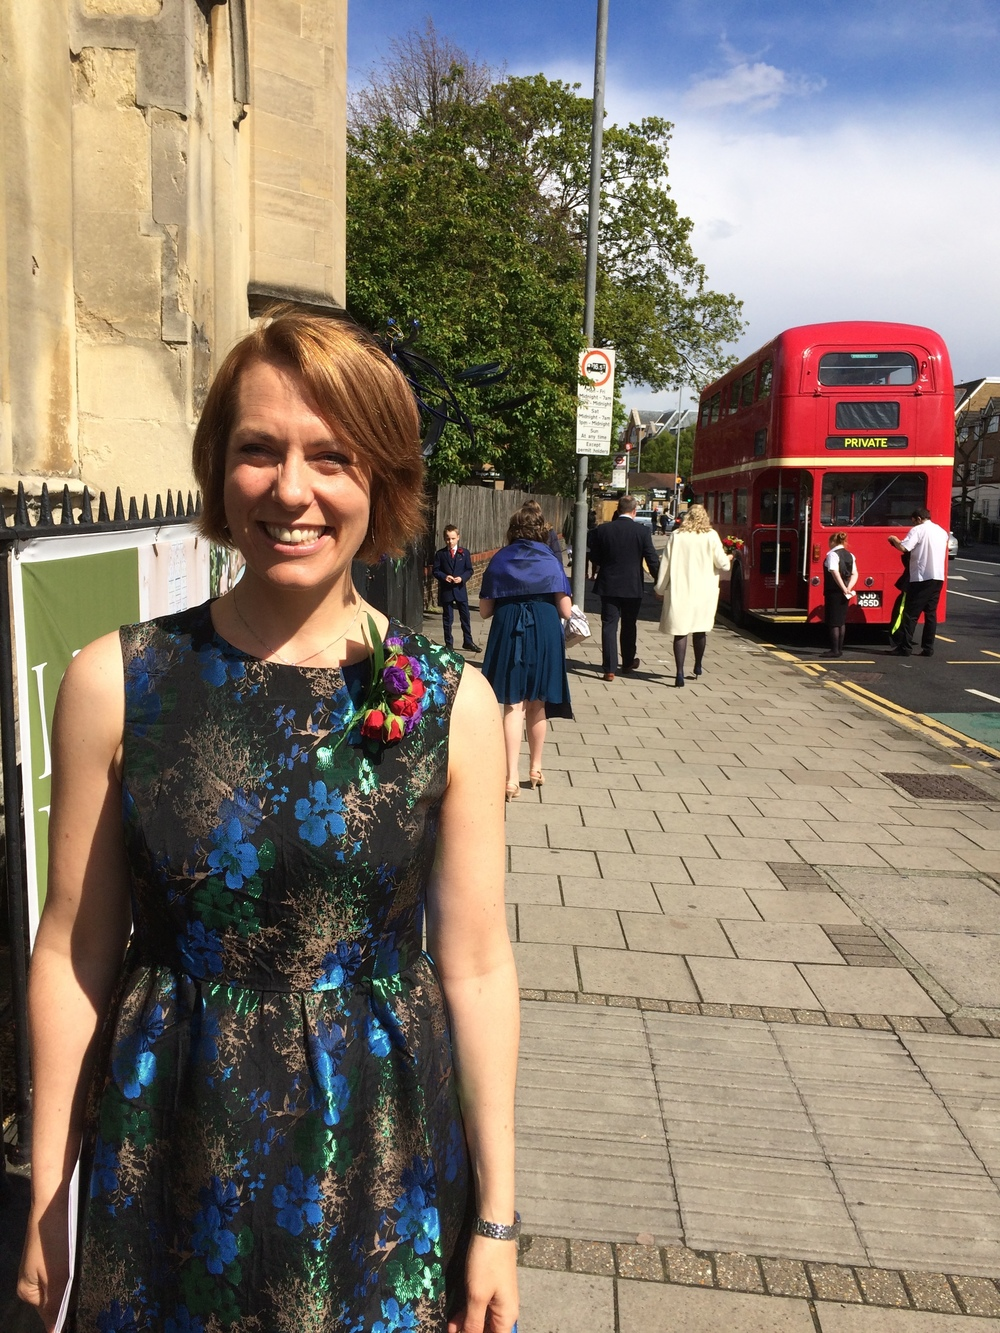 Liz Ross Martyn is a Freelance Marketing Consultant and long-time fan of standing near bus stops.